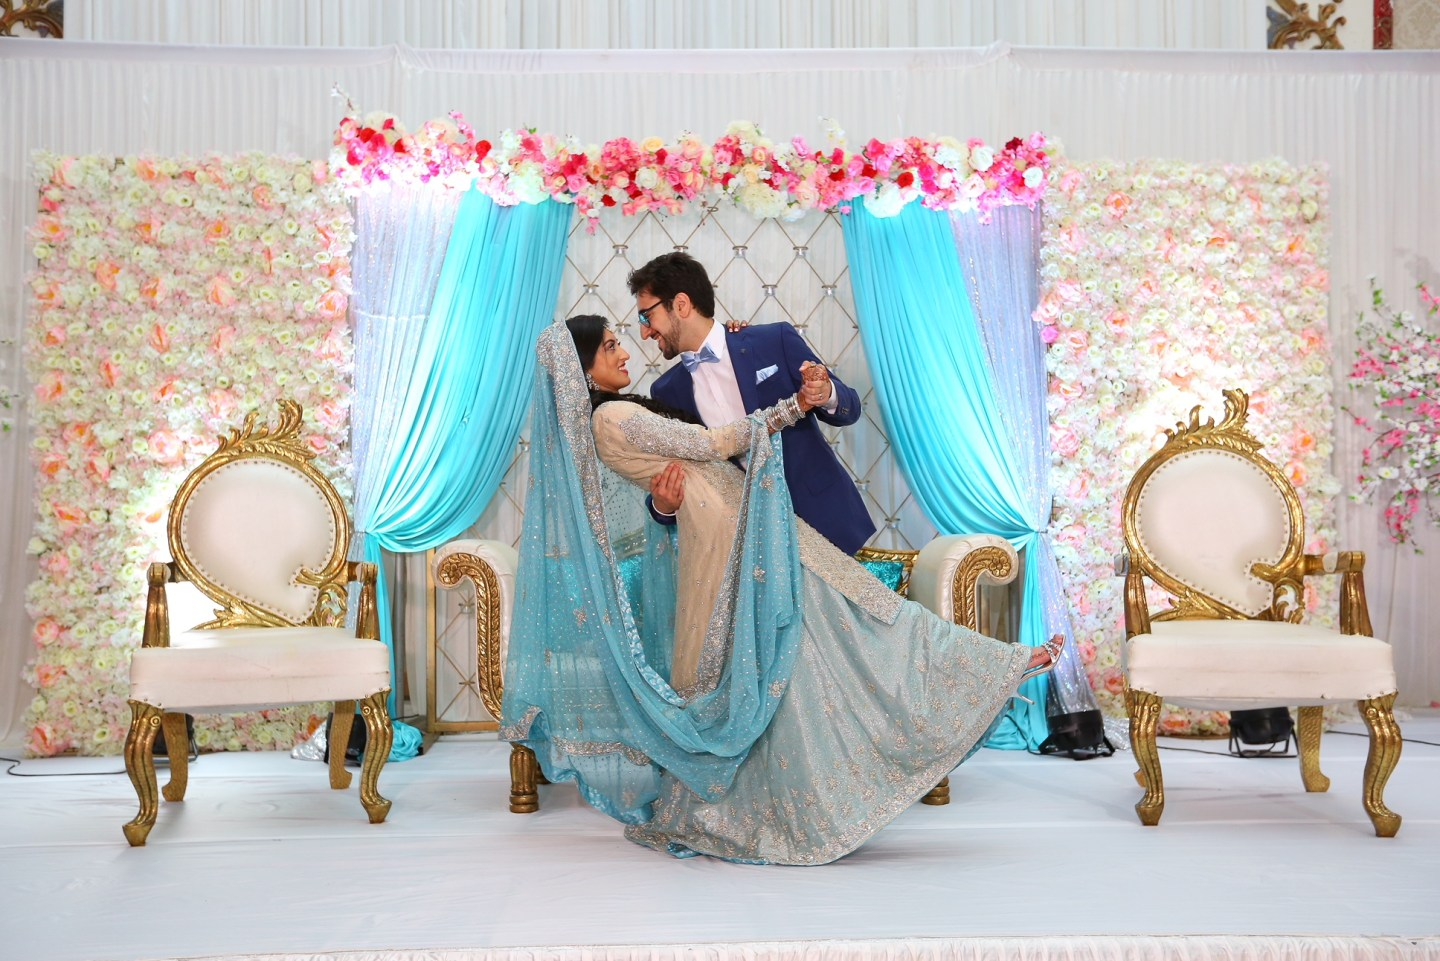 Wedding Diaries: The one With the Actual Events and the Honeymoon….